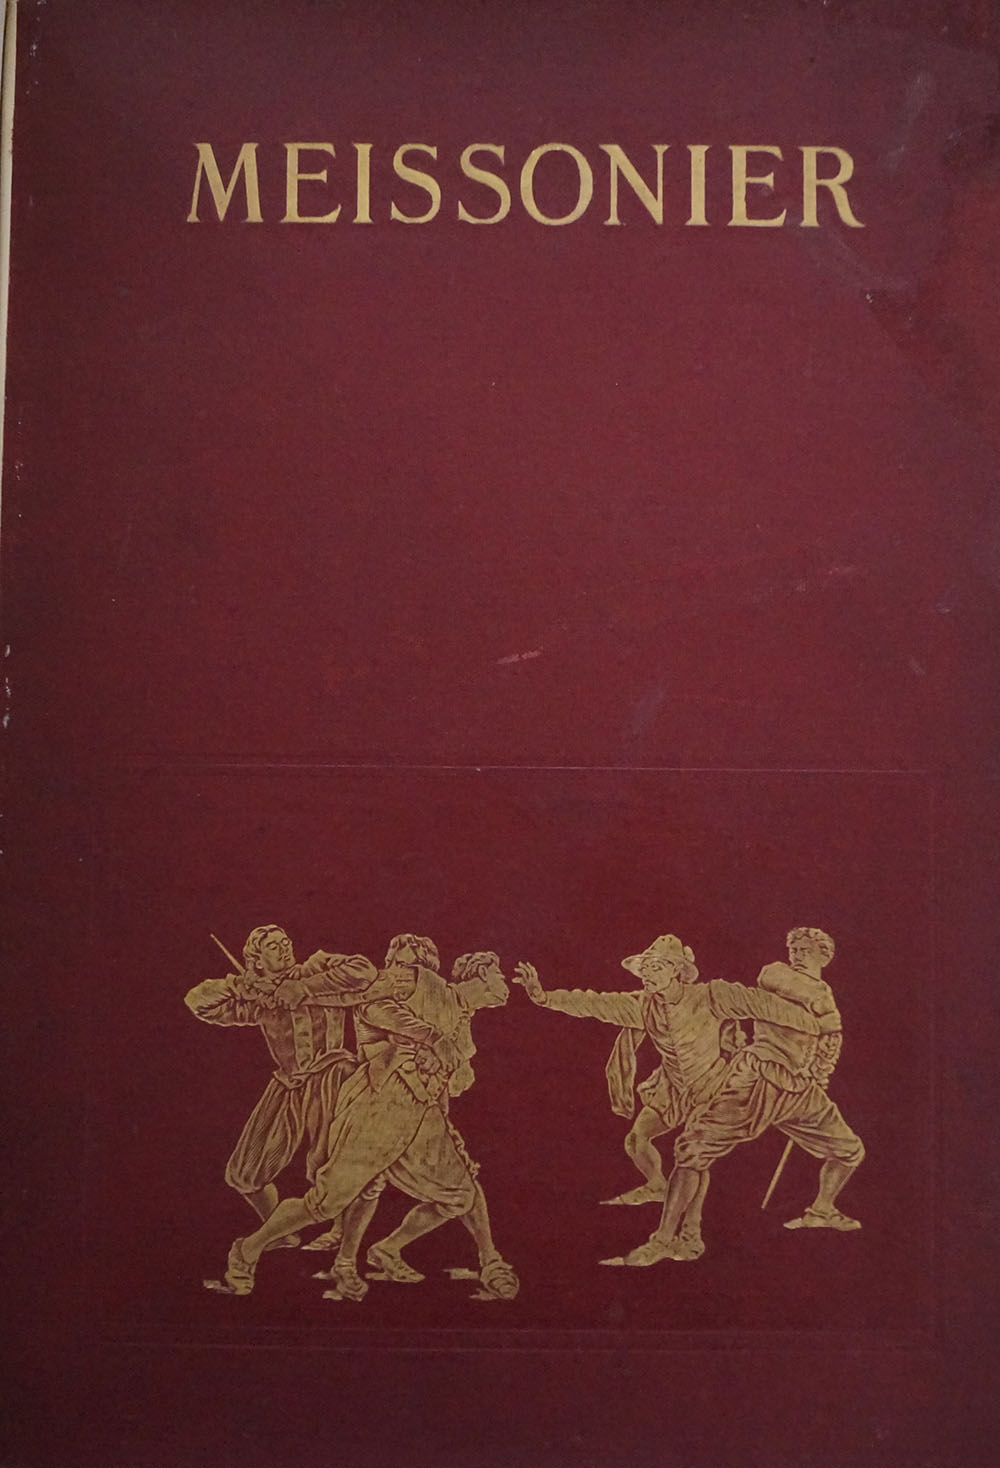 Original cover (bound in at back) (click for bigger picture)